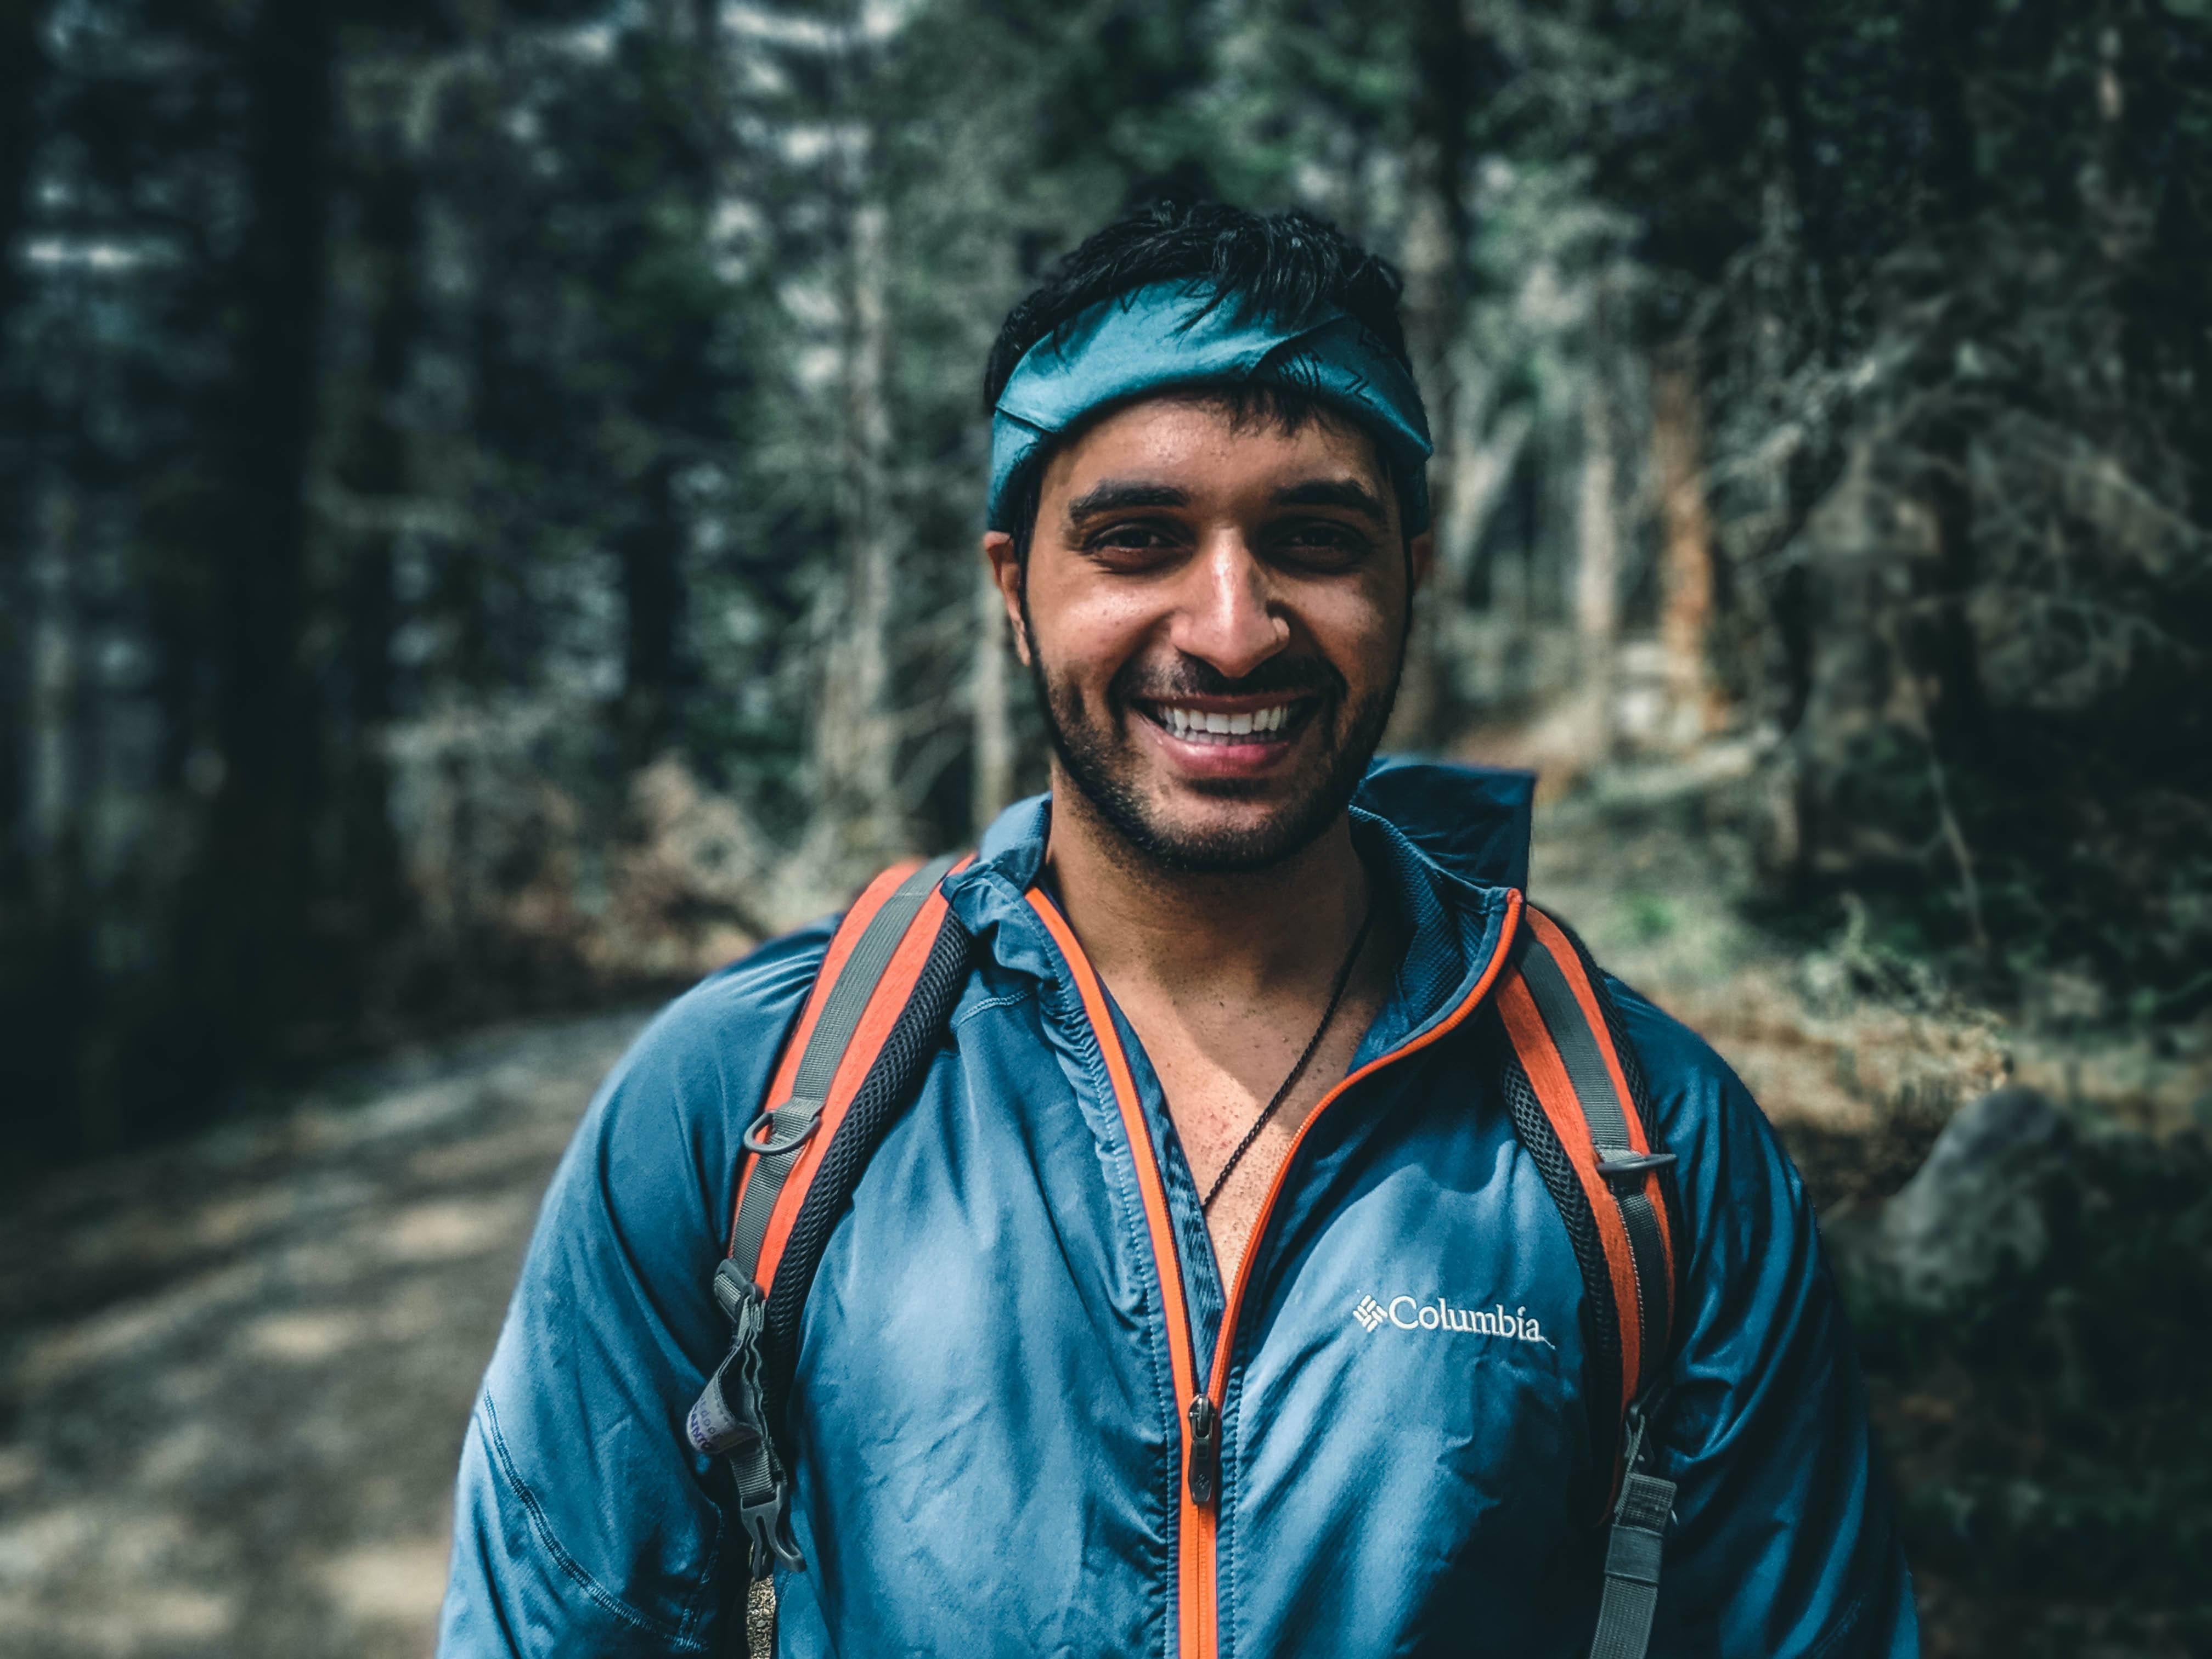 An attractive Indian man wearing a windbreaker and a bandana. He is smiling and on a wooded path hiking.